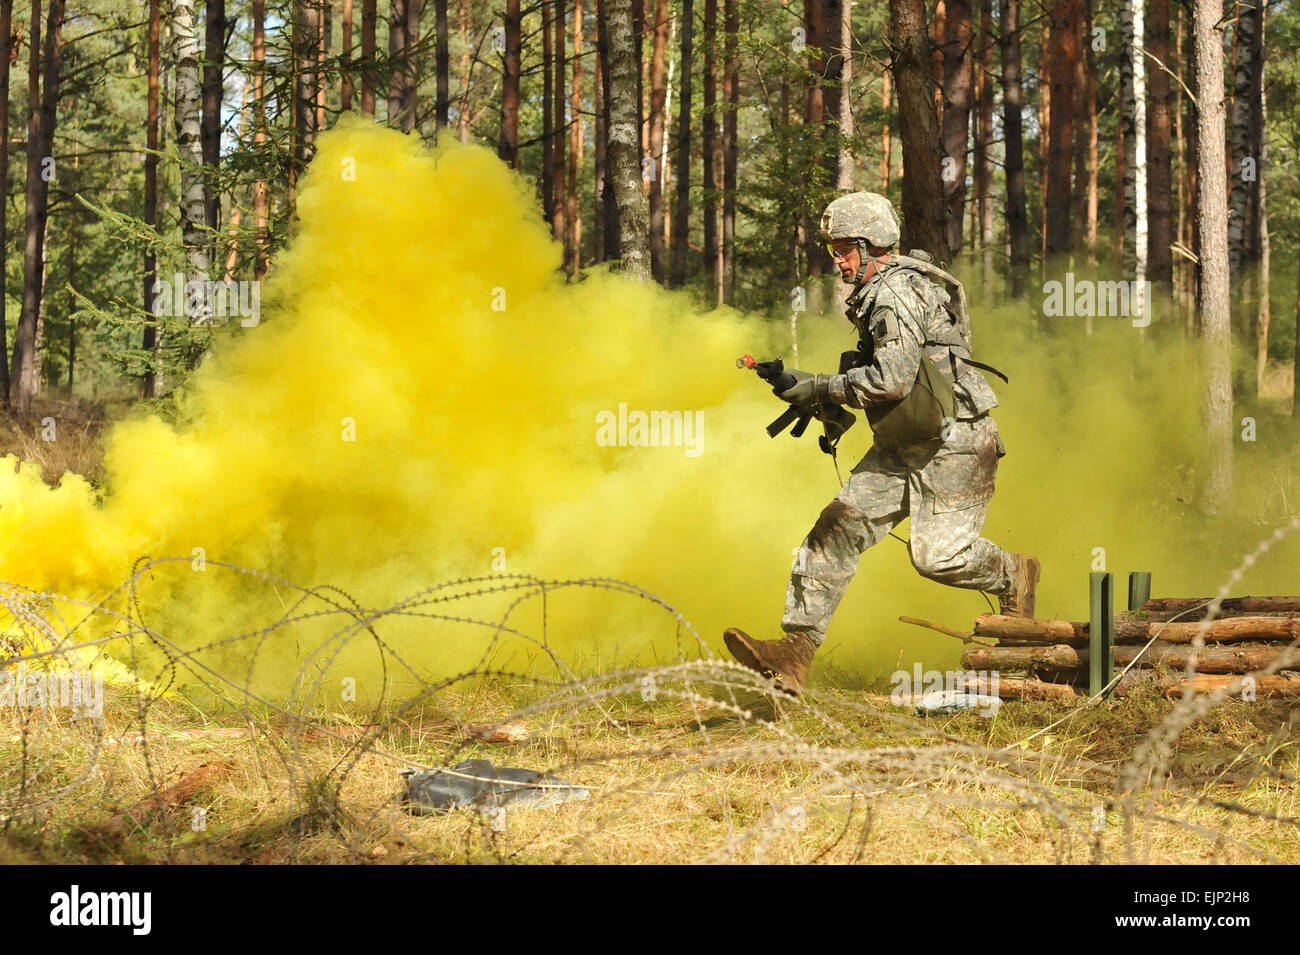 U.S. Army Capt. Christopher Harris, assigned to 10th Air & Missile Defense Command, moves through an obstacle - Stock Image